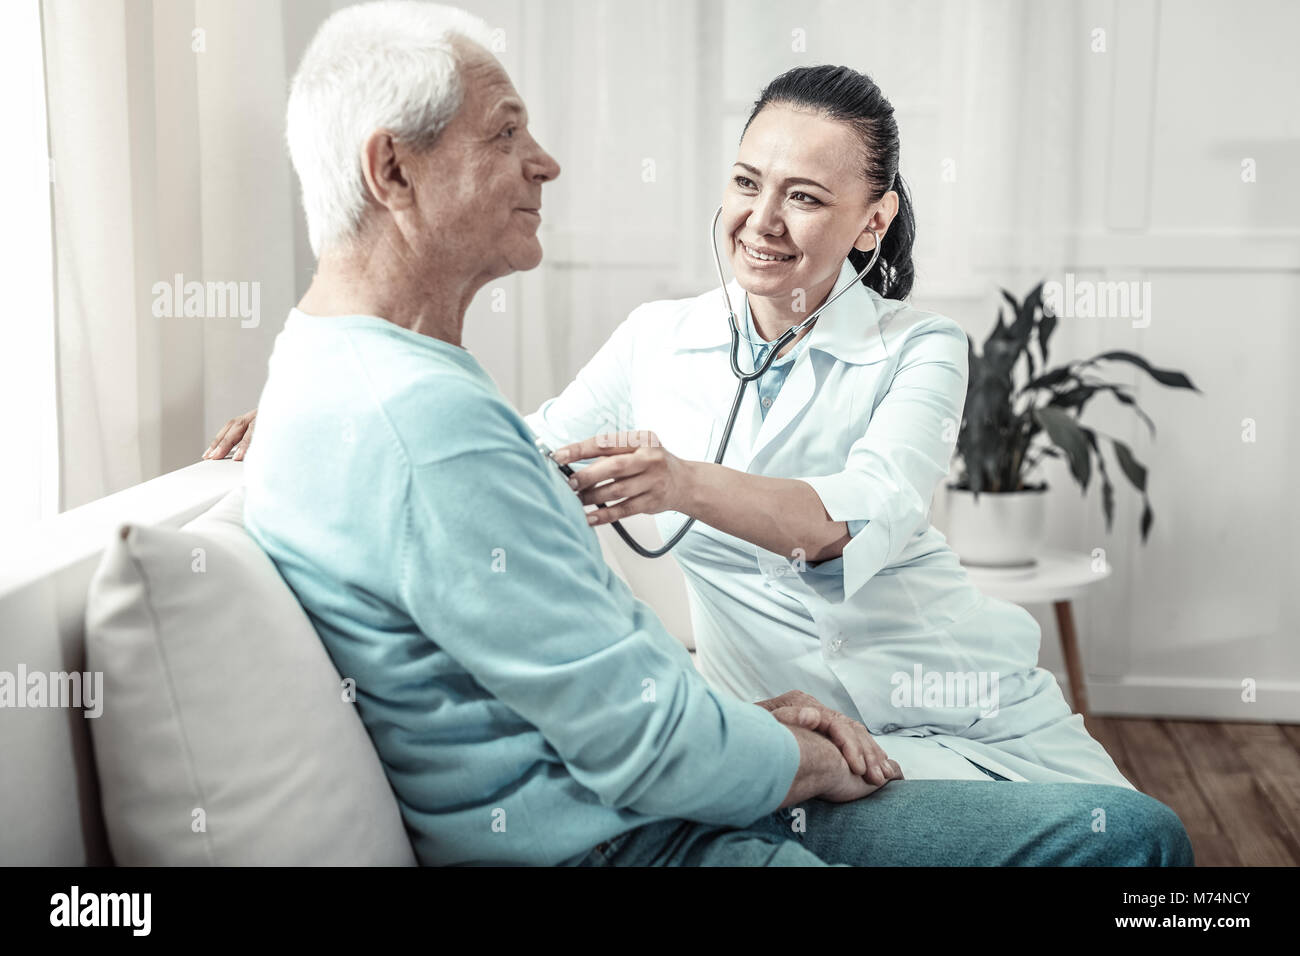 Pleasant kind nurse using her stethoscope and smiling. - Stock Image